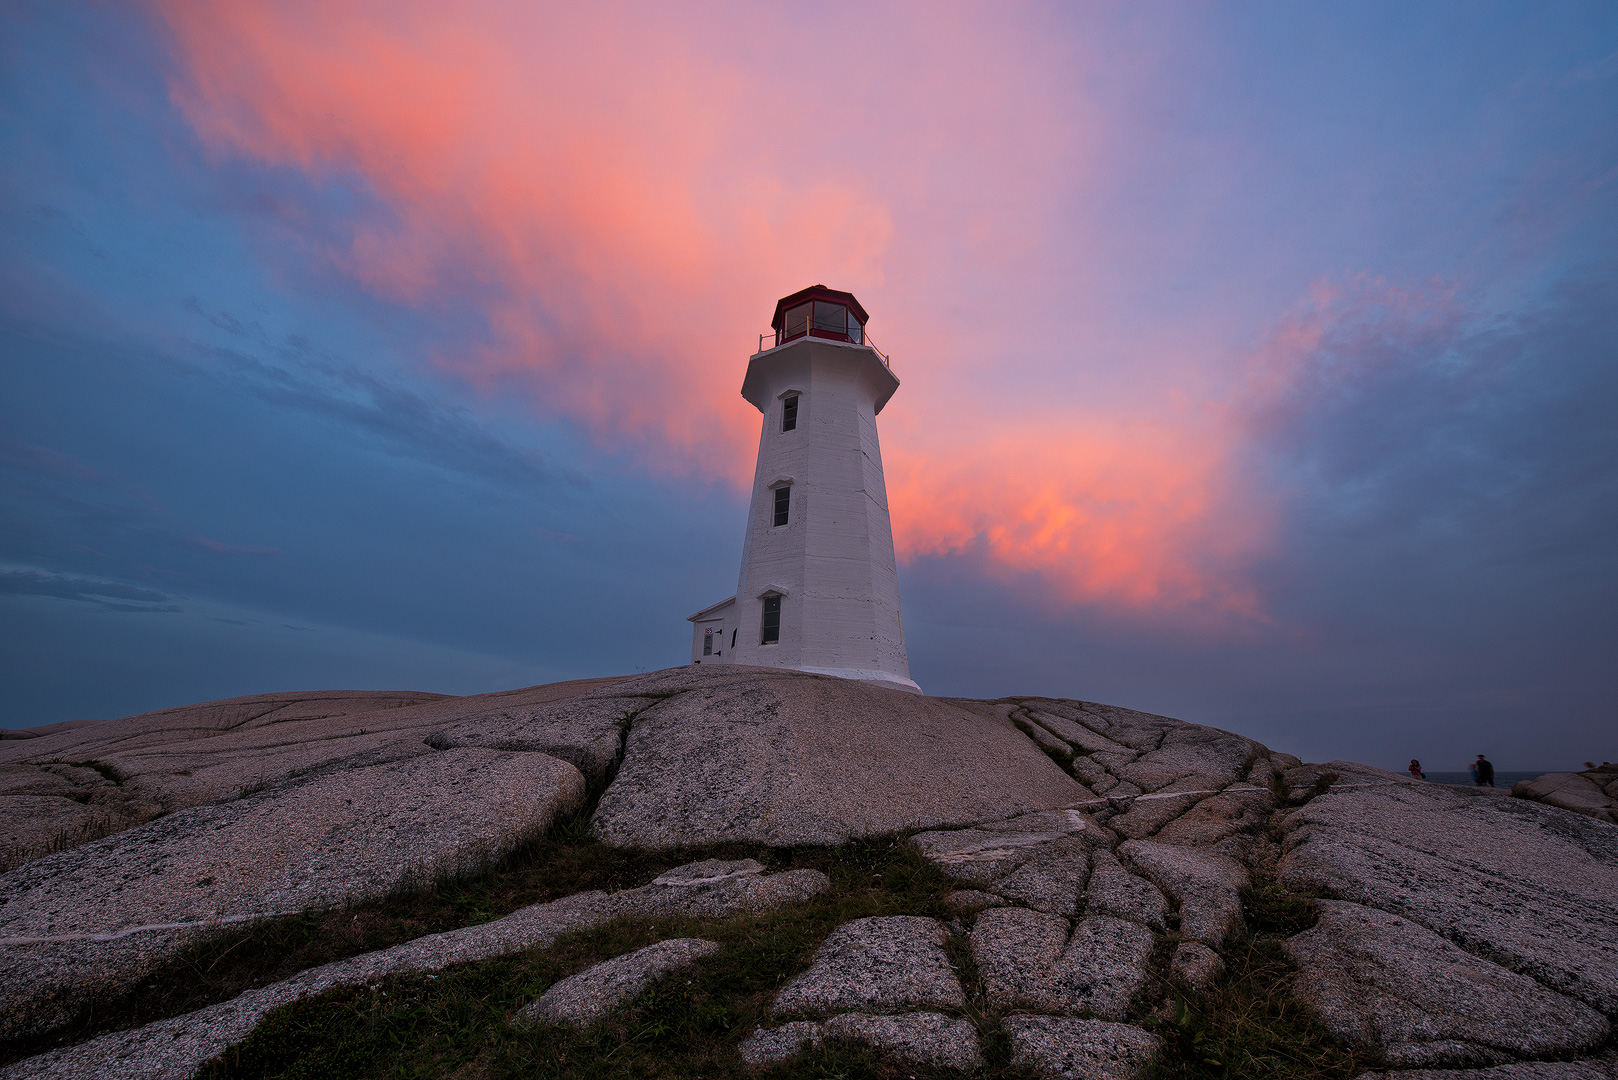 Peggy's Cove, Lighthouse, Nova Scotia, Canada, Atlantic, Ocean, Coast, Sunset, Dramatic Light, Bernard Chen, Timescapes, photo